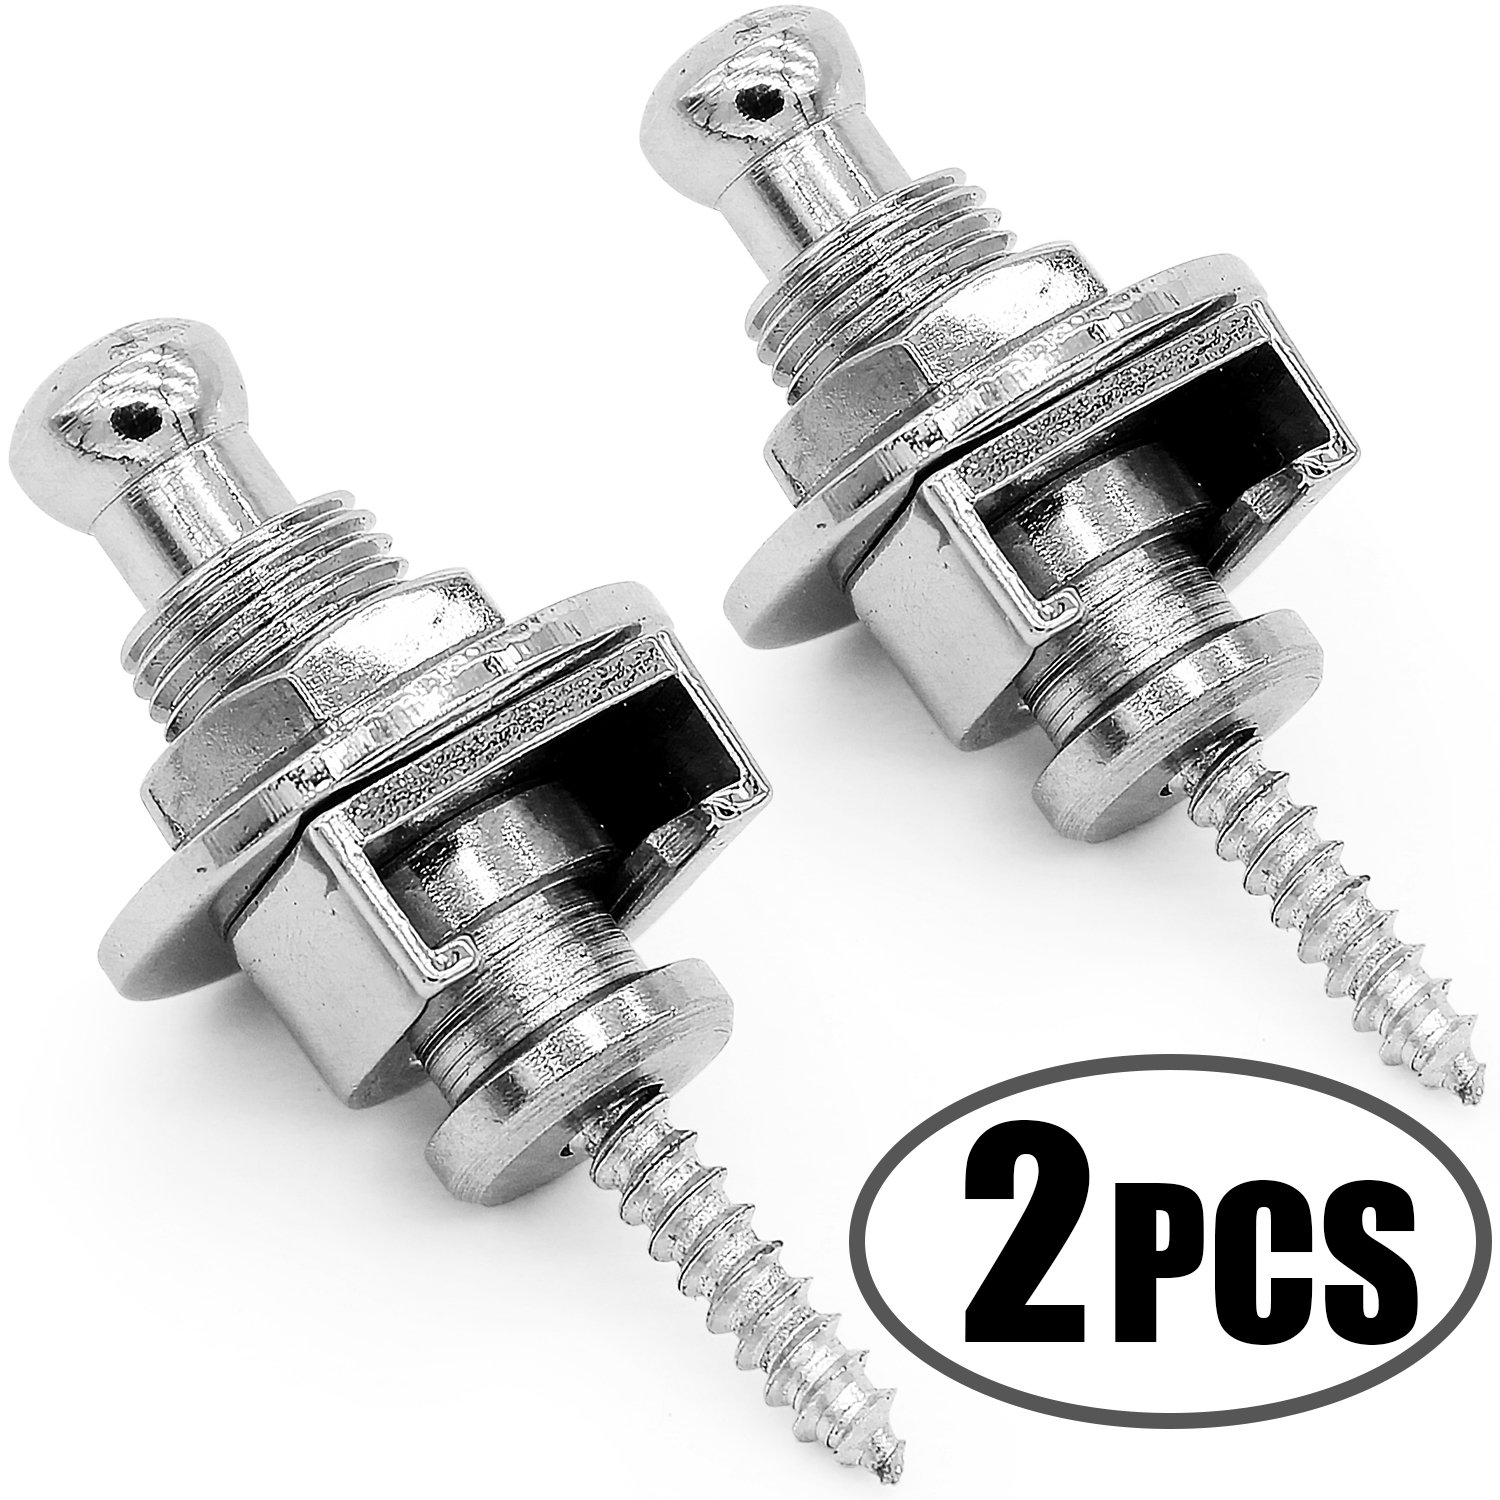 Anwenk Premium Guitar Strap Locks and Buttons Security Quick Release Straplocks Strap Retainer System Nickel (Pack of 2) by Anwenk (Image #1)